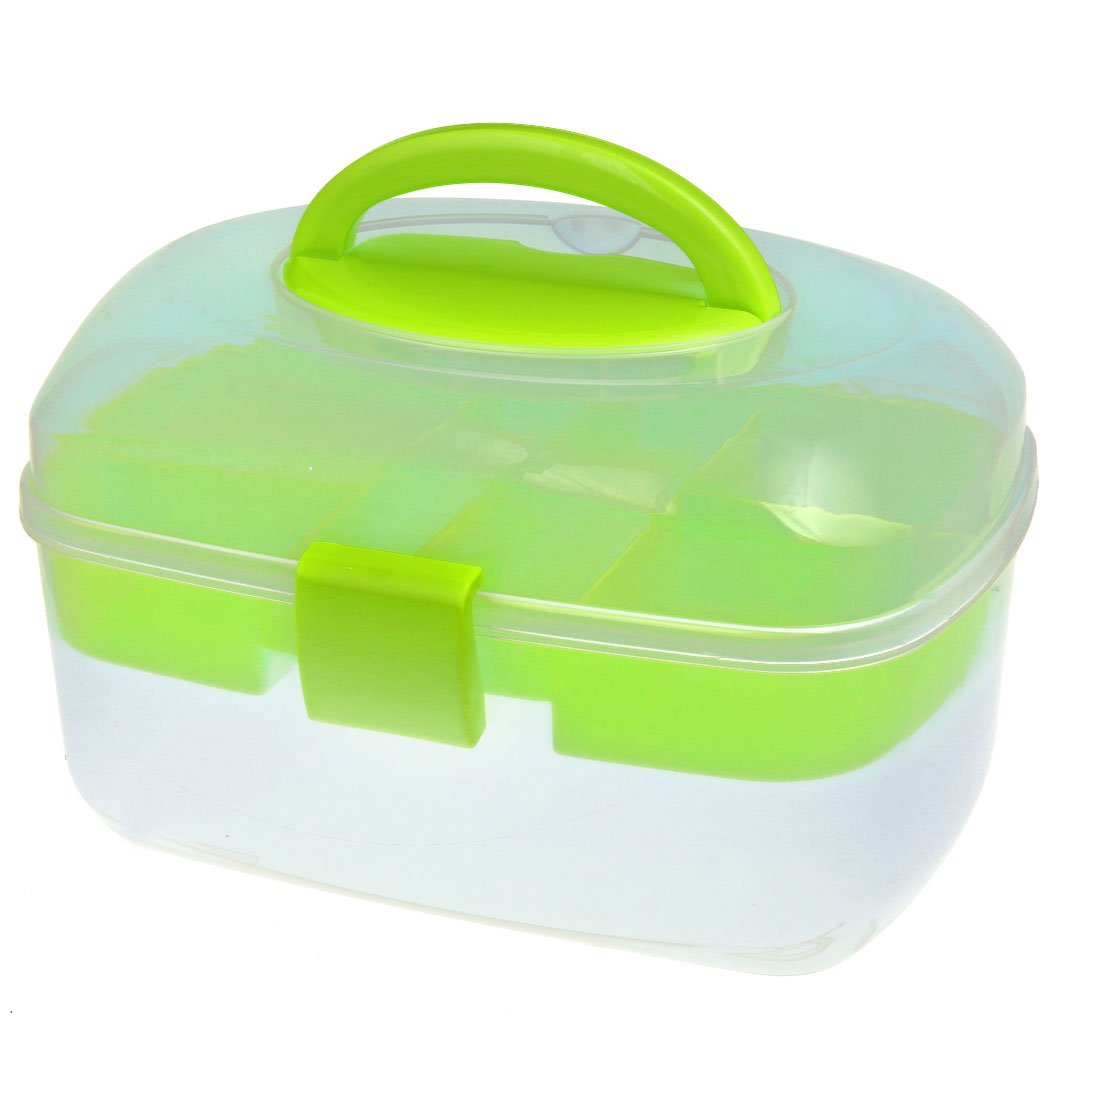 uxcell Oval-Shaped Empty Nail Art Makeup Cosmetic Tool Container Storage Box Clear